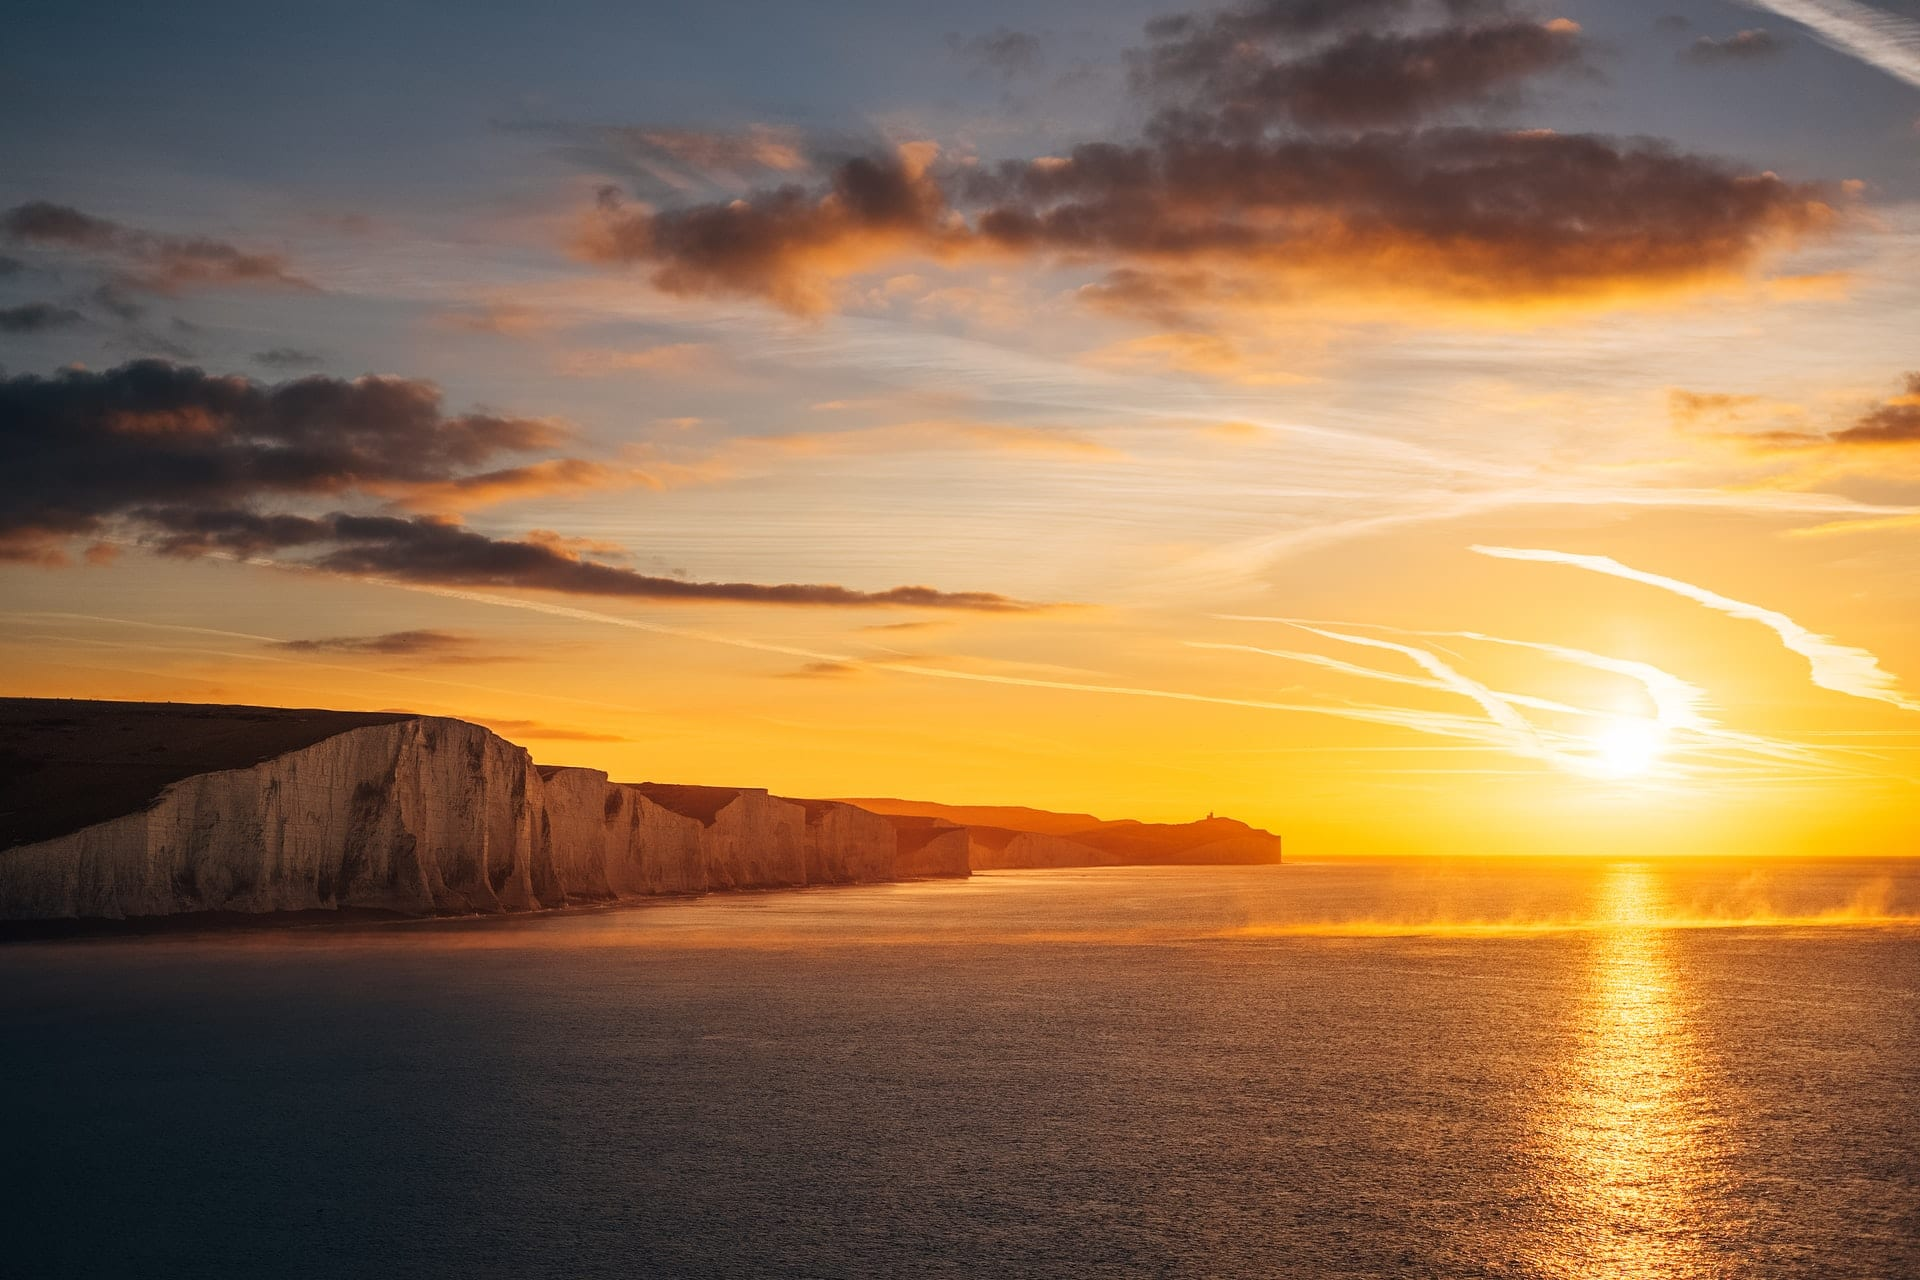 sunset-at-seven-sisters-cliffs-and-sea-english-channel-south-downs-east-sussex-day-trips-from-brighton